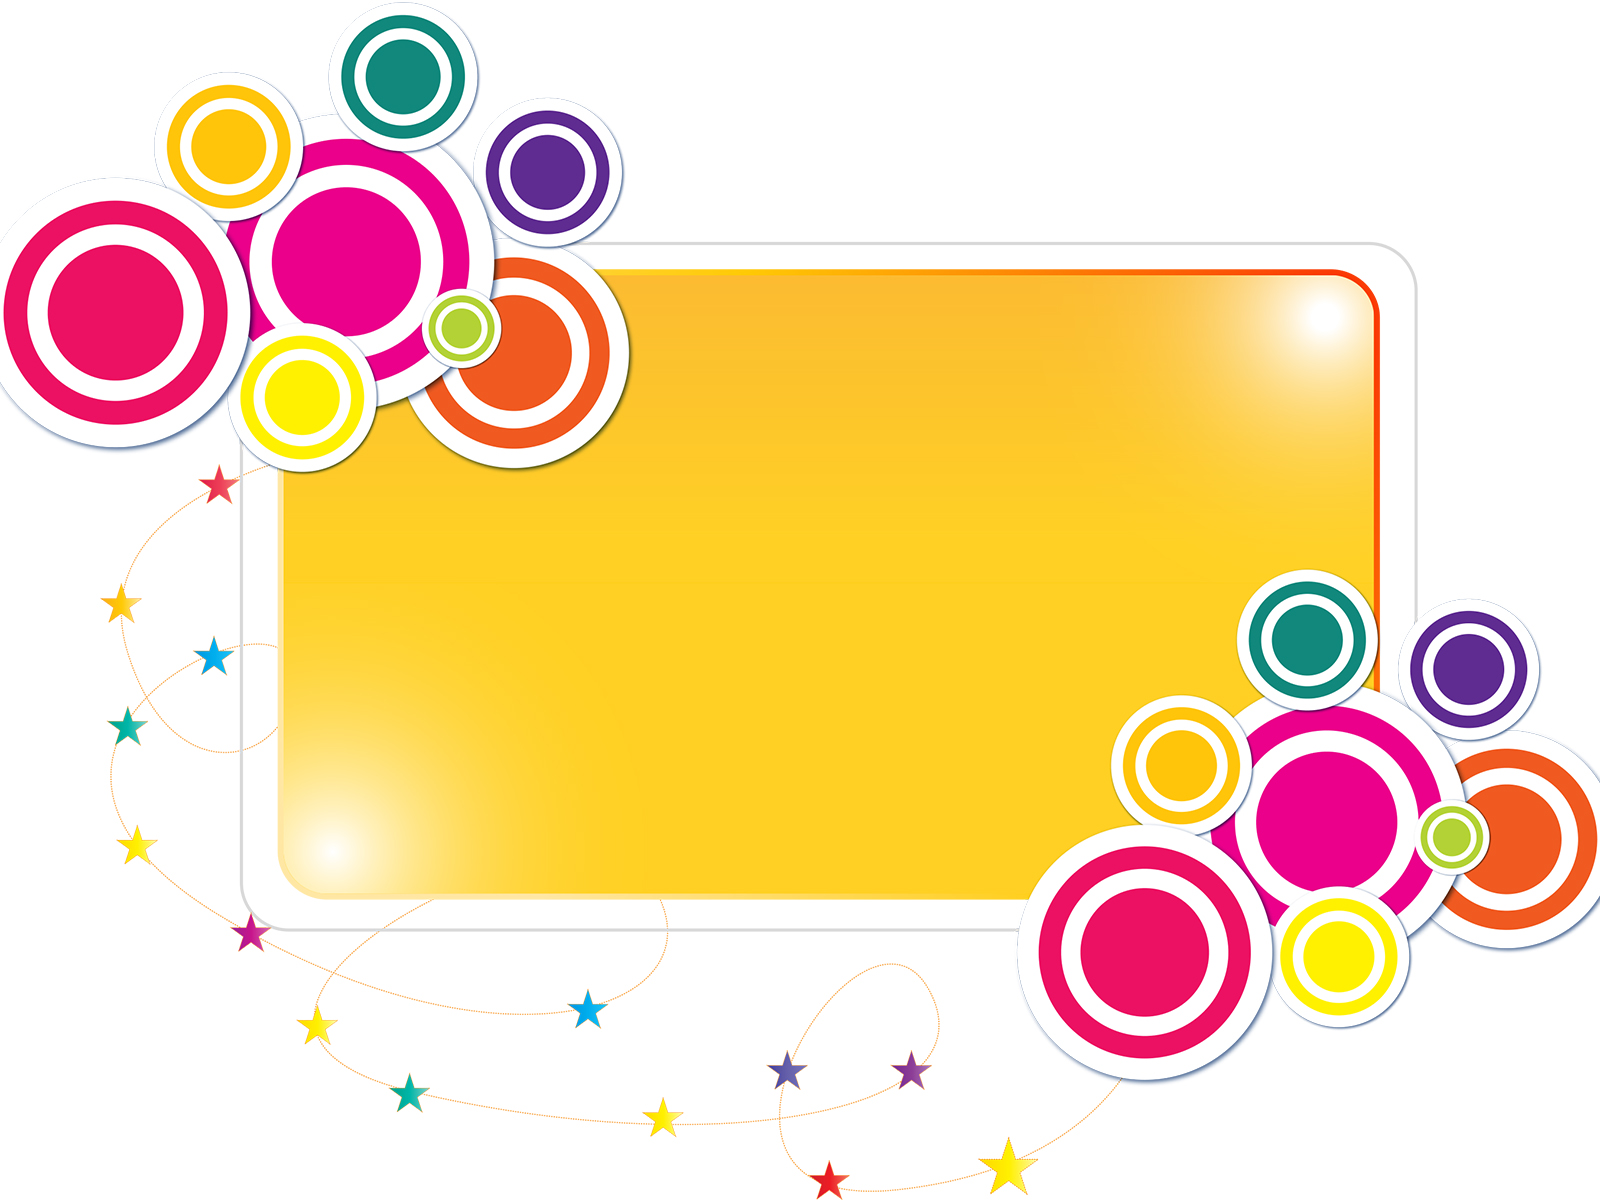 colorful label frame backgrounds border   frames  powerpoint  purple  white  yellow templates star student clipart star student clipart